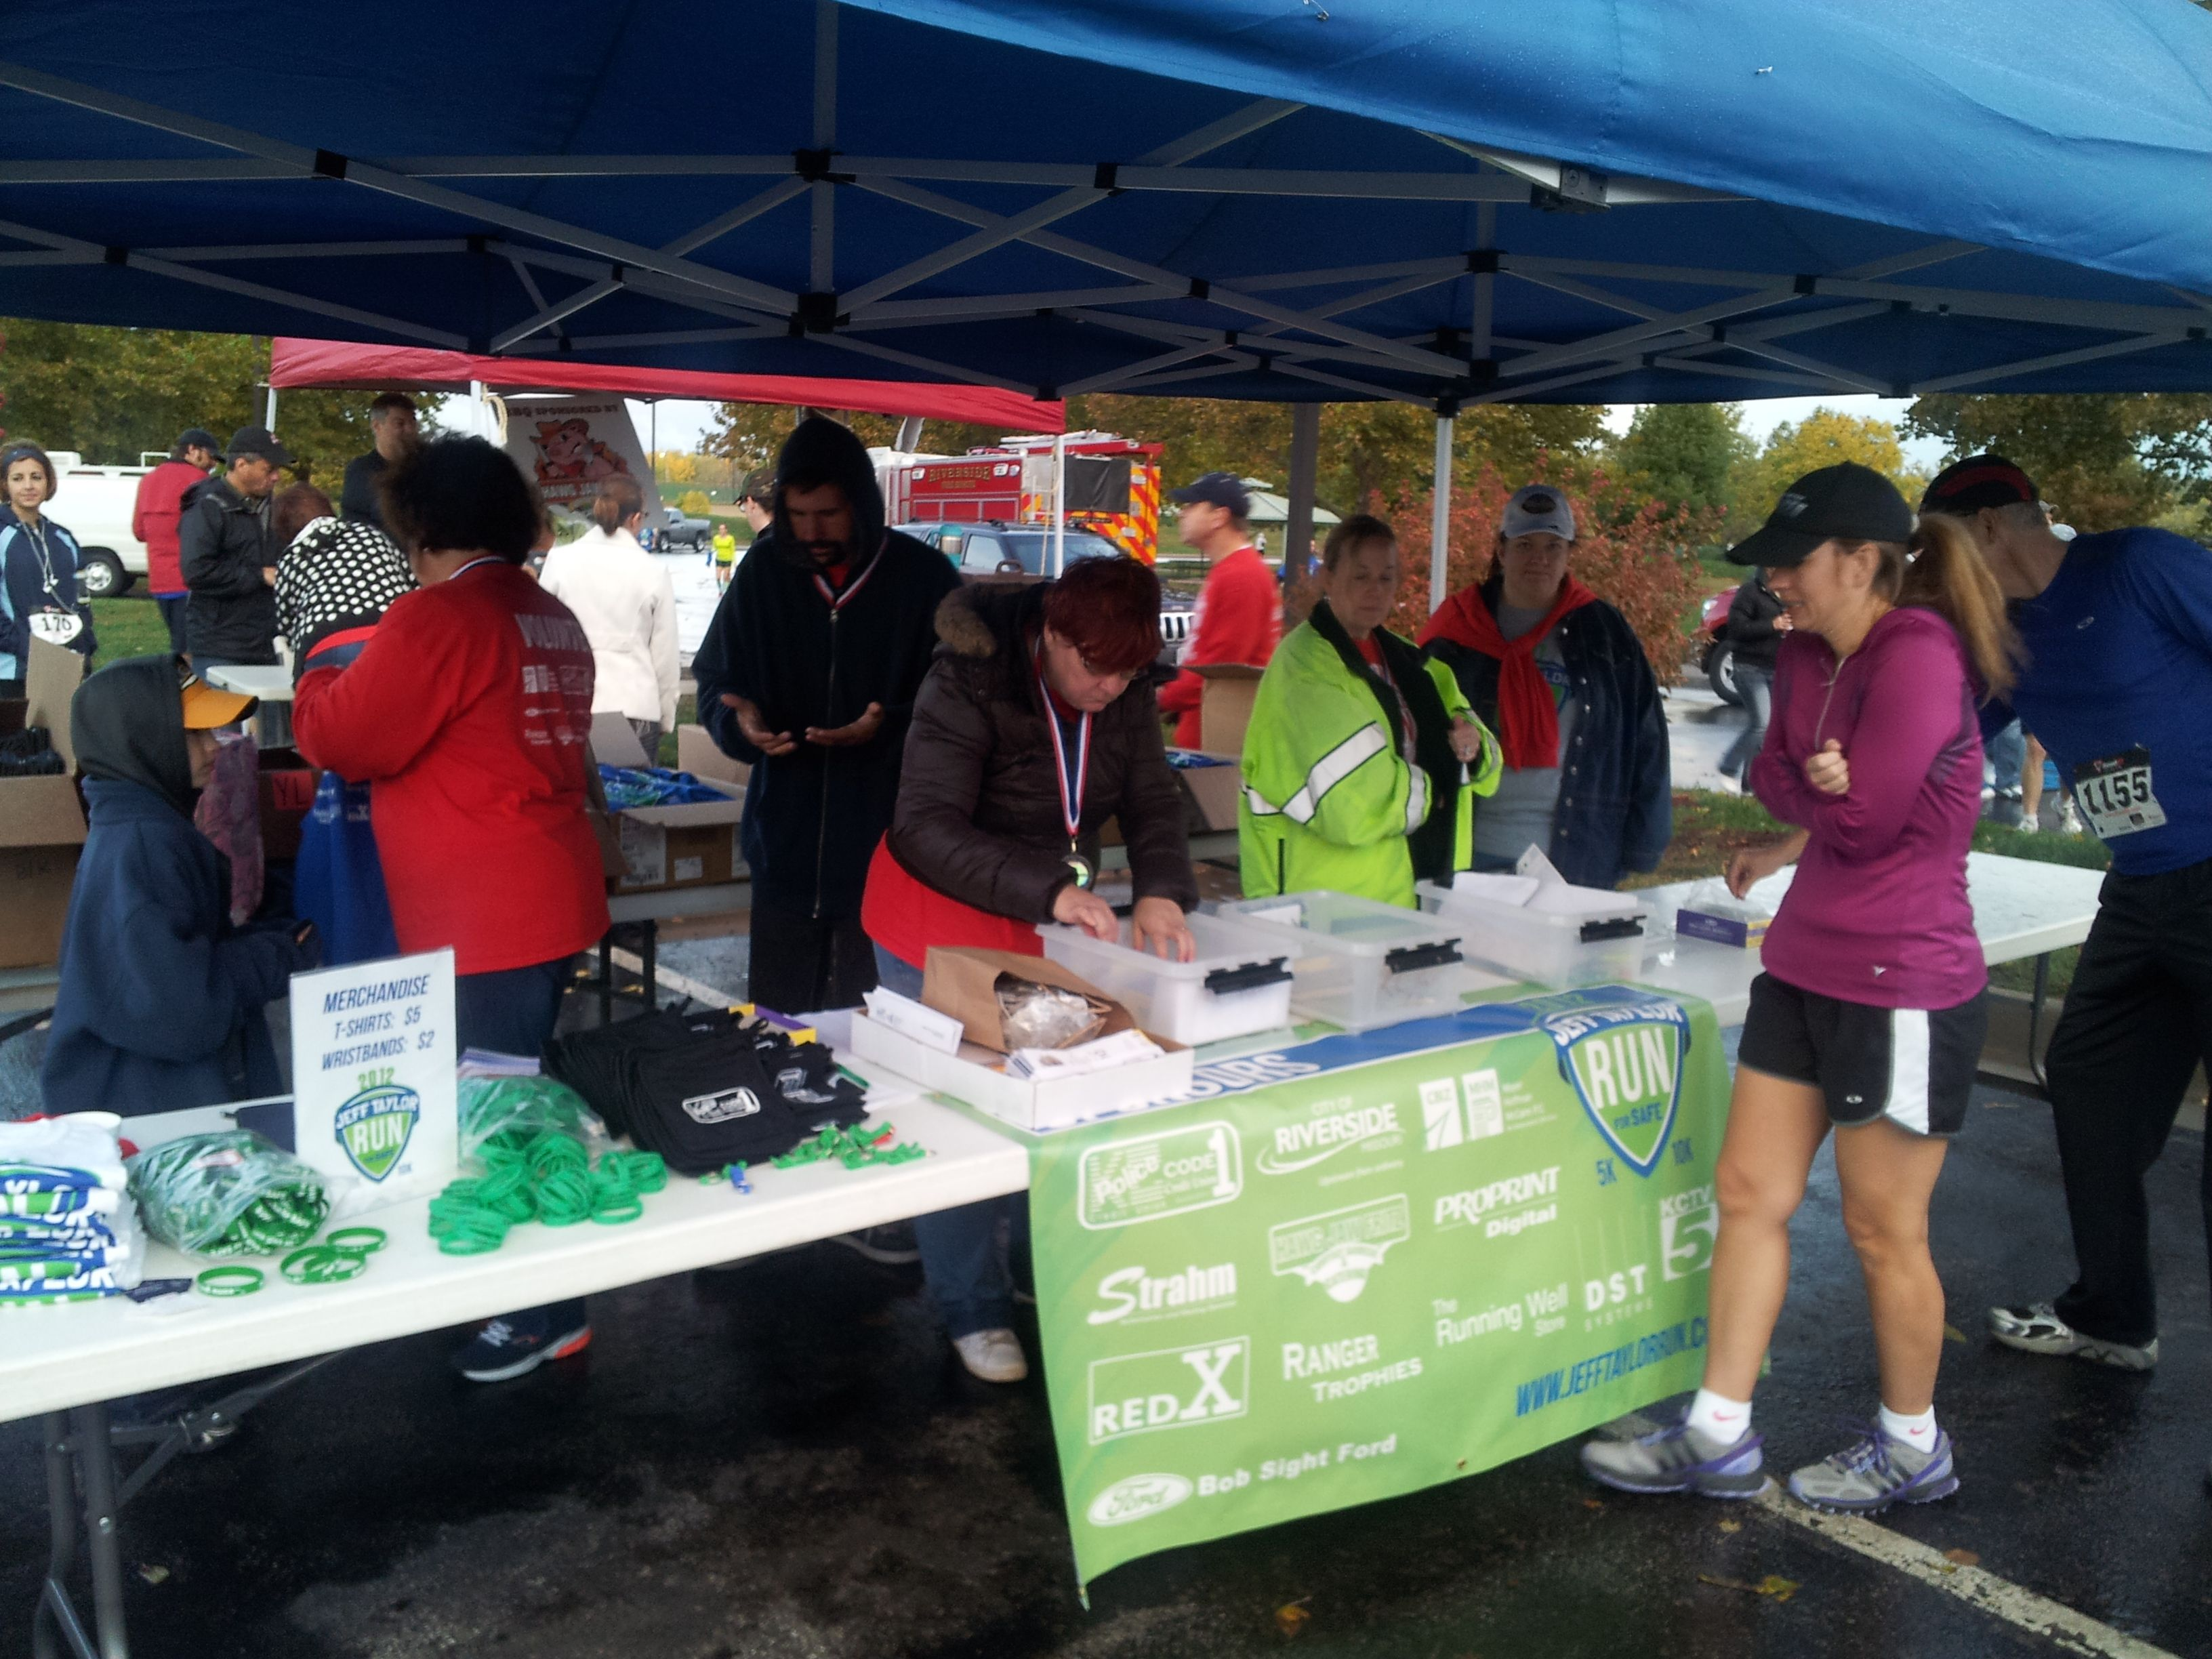 Kcpcu is a proud sponsor of the jeff taylor run for safe